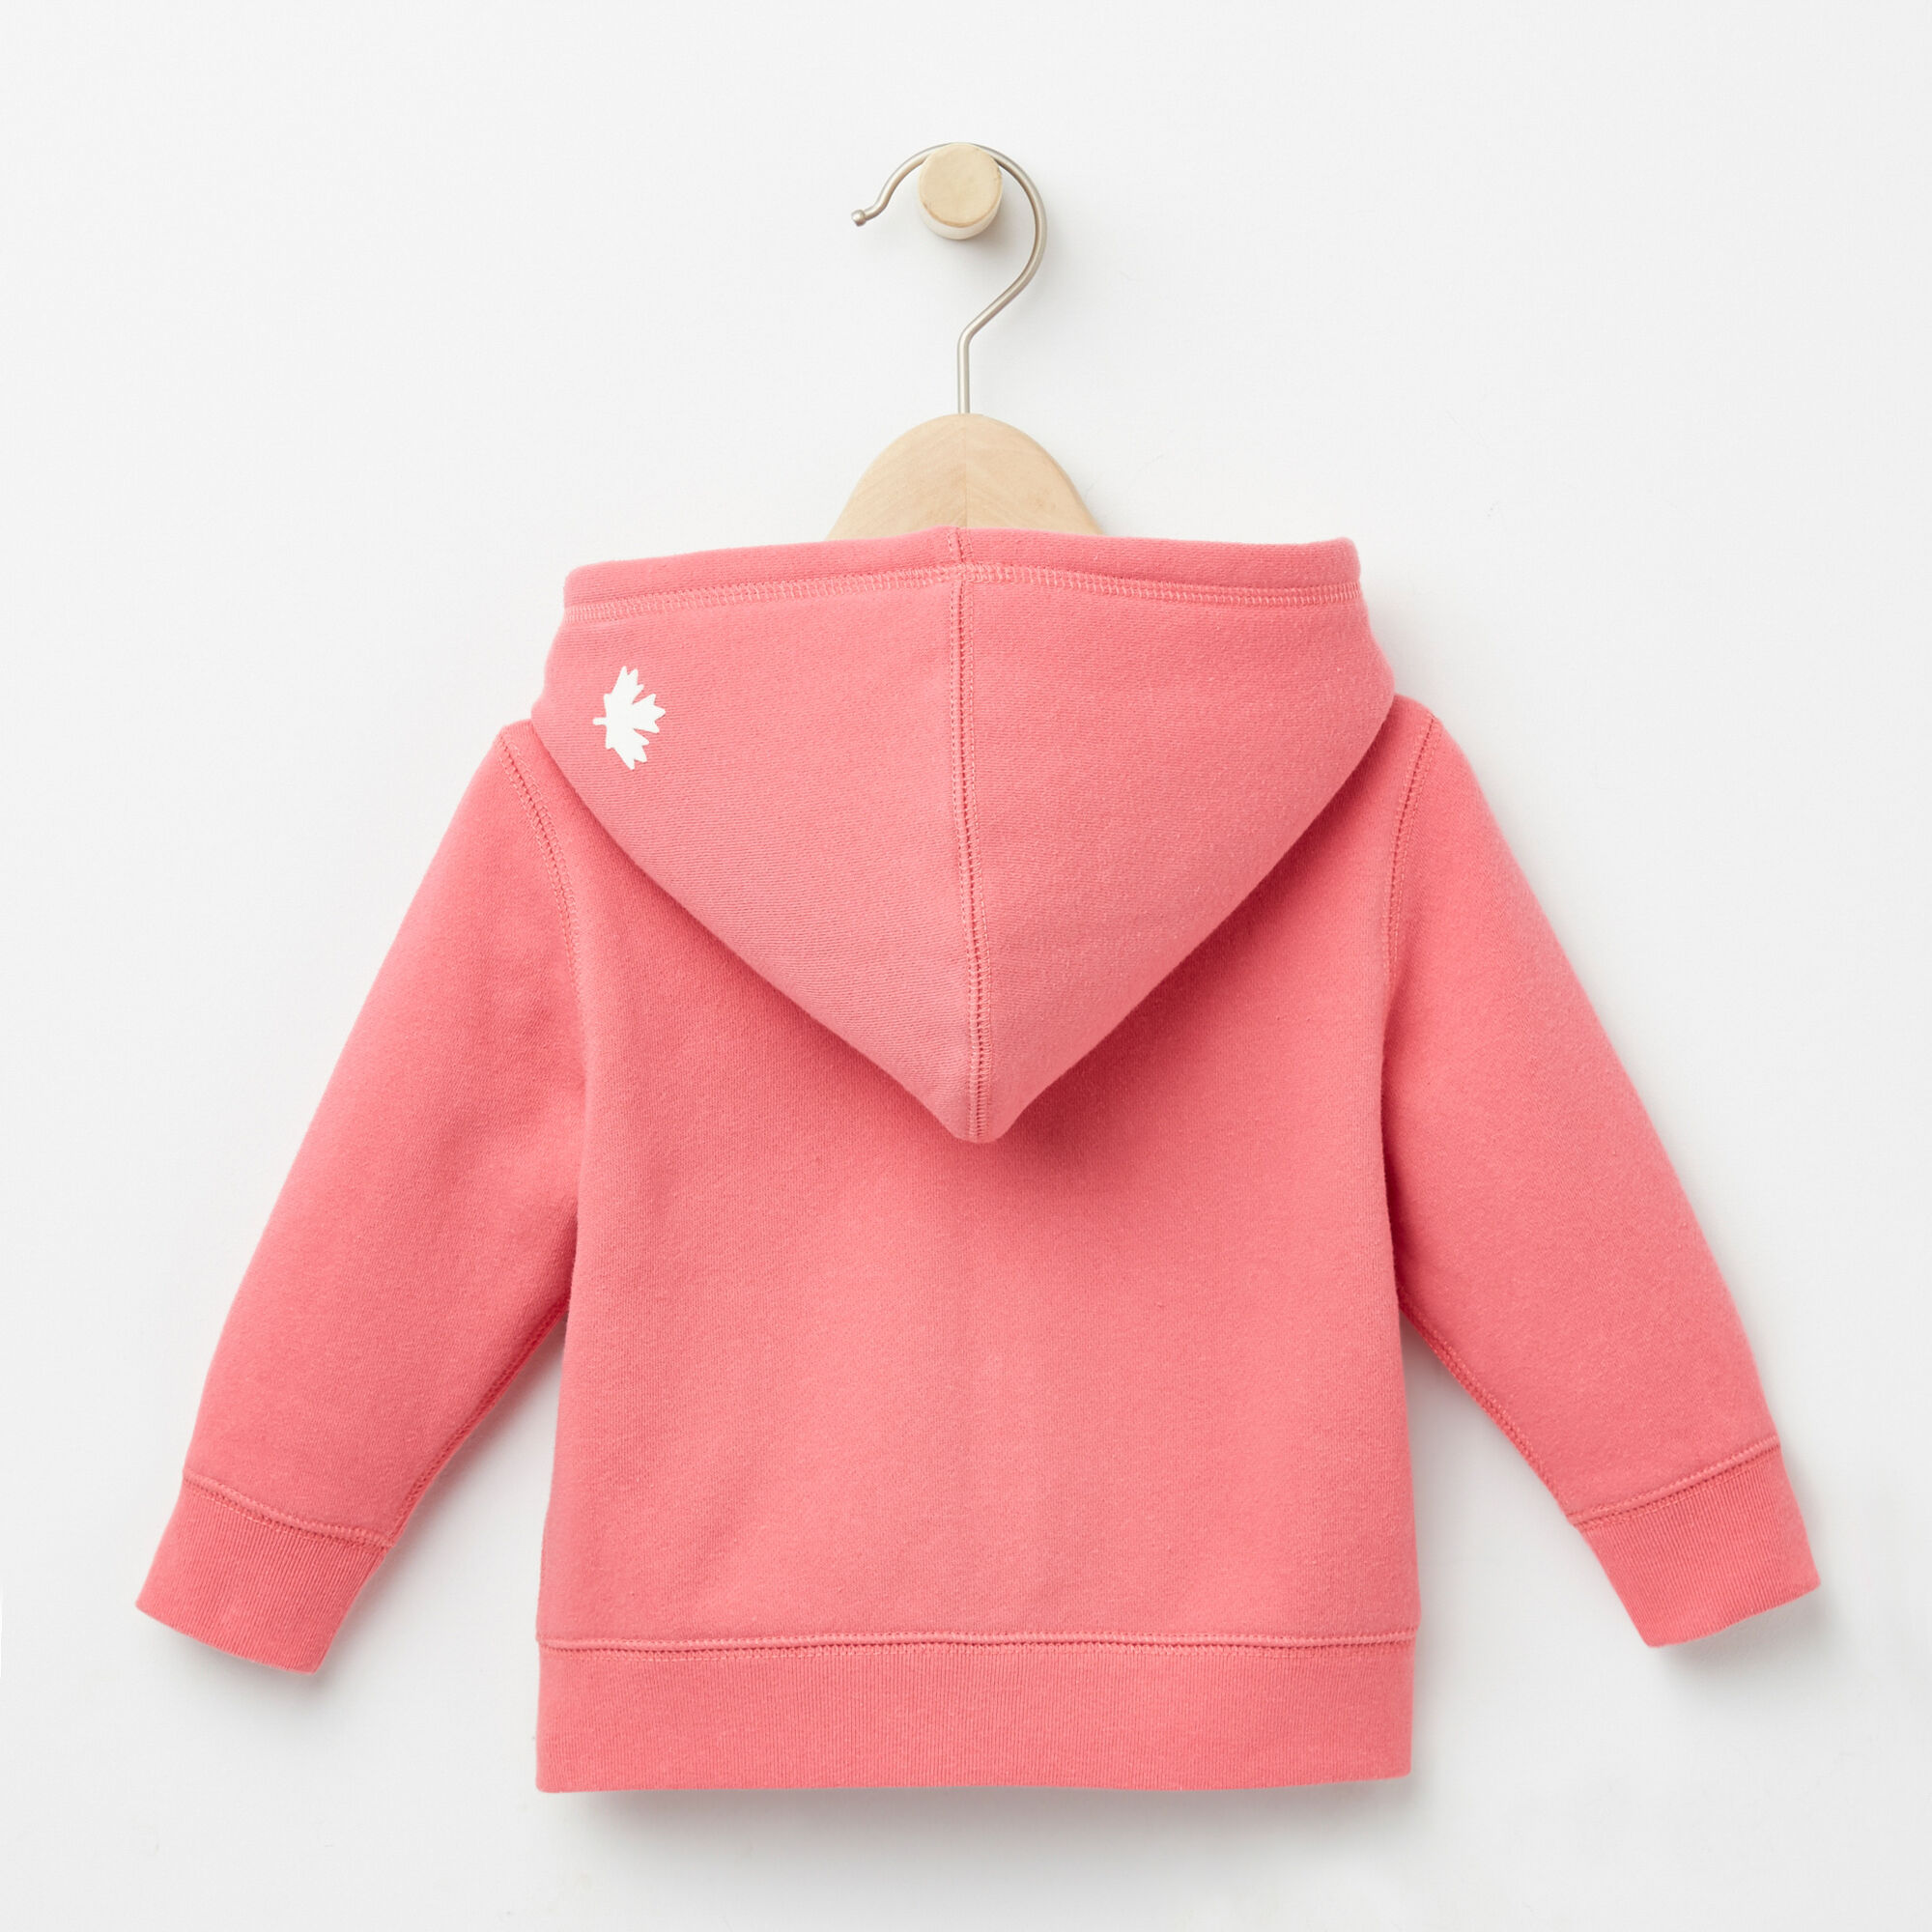 Bébés Original Full Zip Hoody